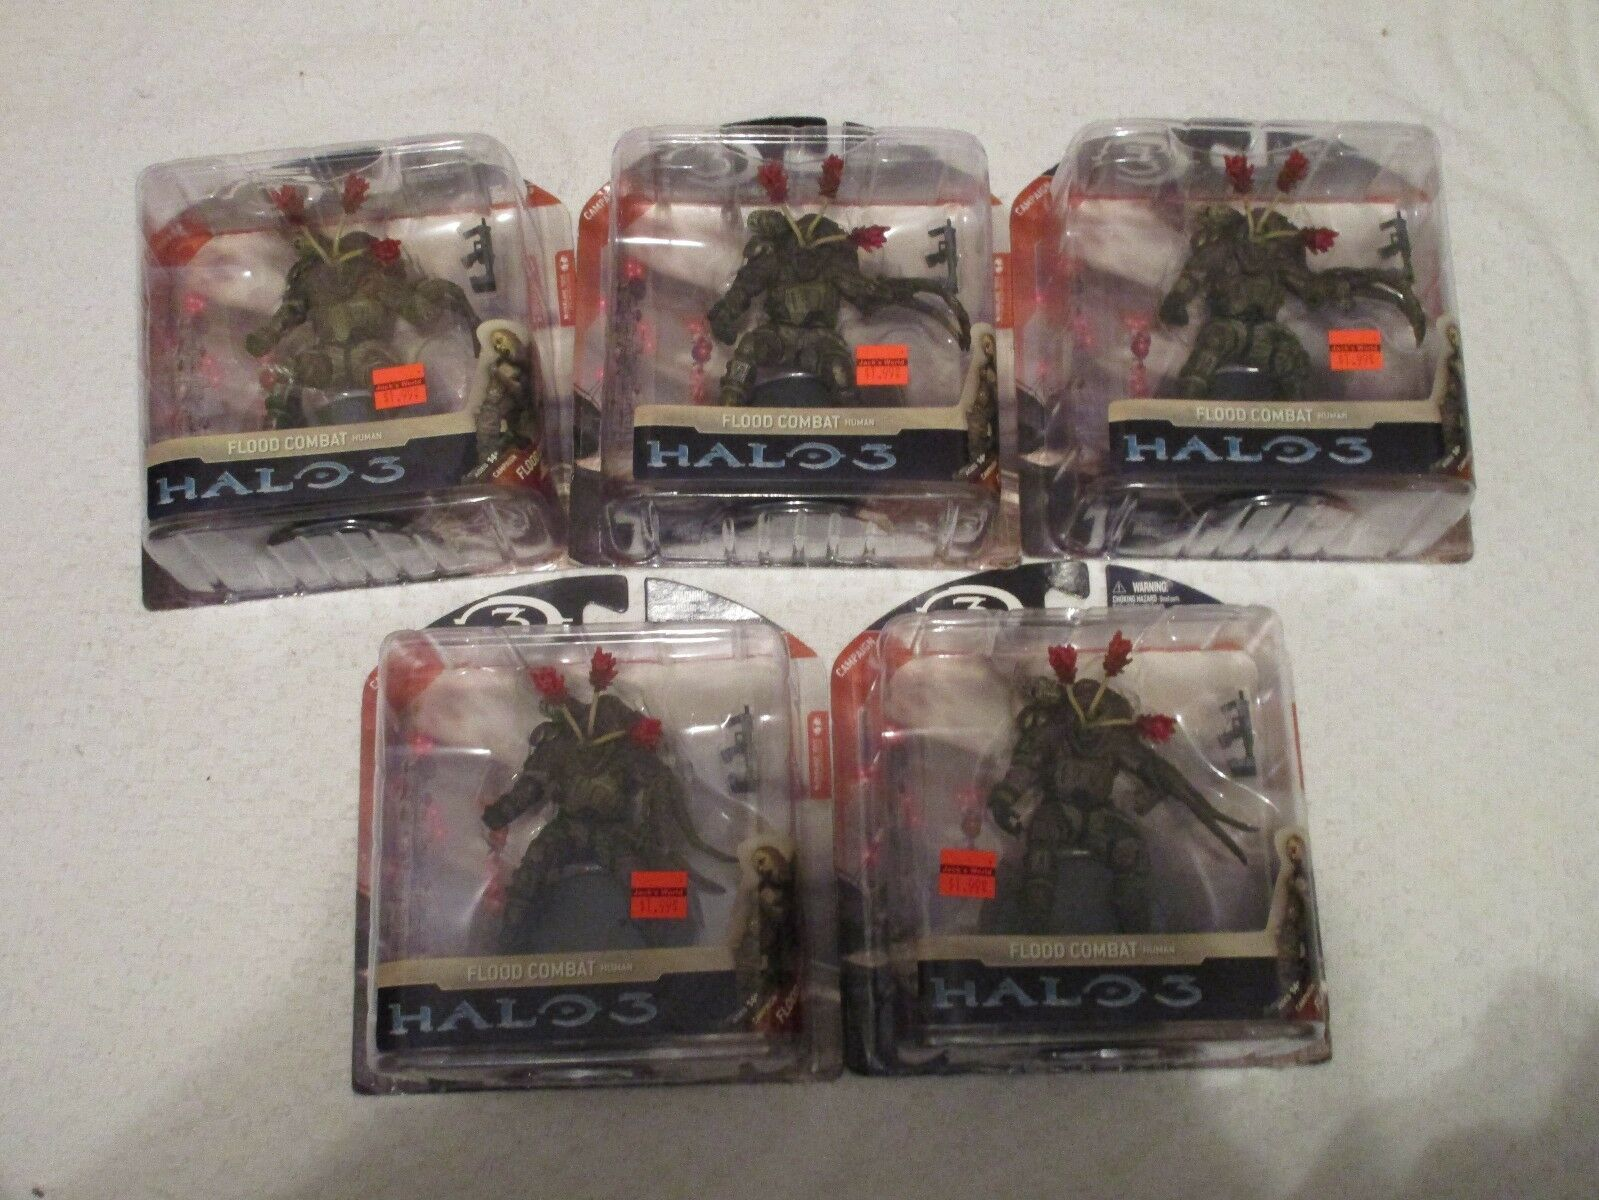 McFarlane Halo 3 Series 3 Flood Combat Human Figure Lot of 5